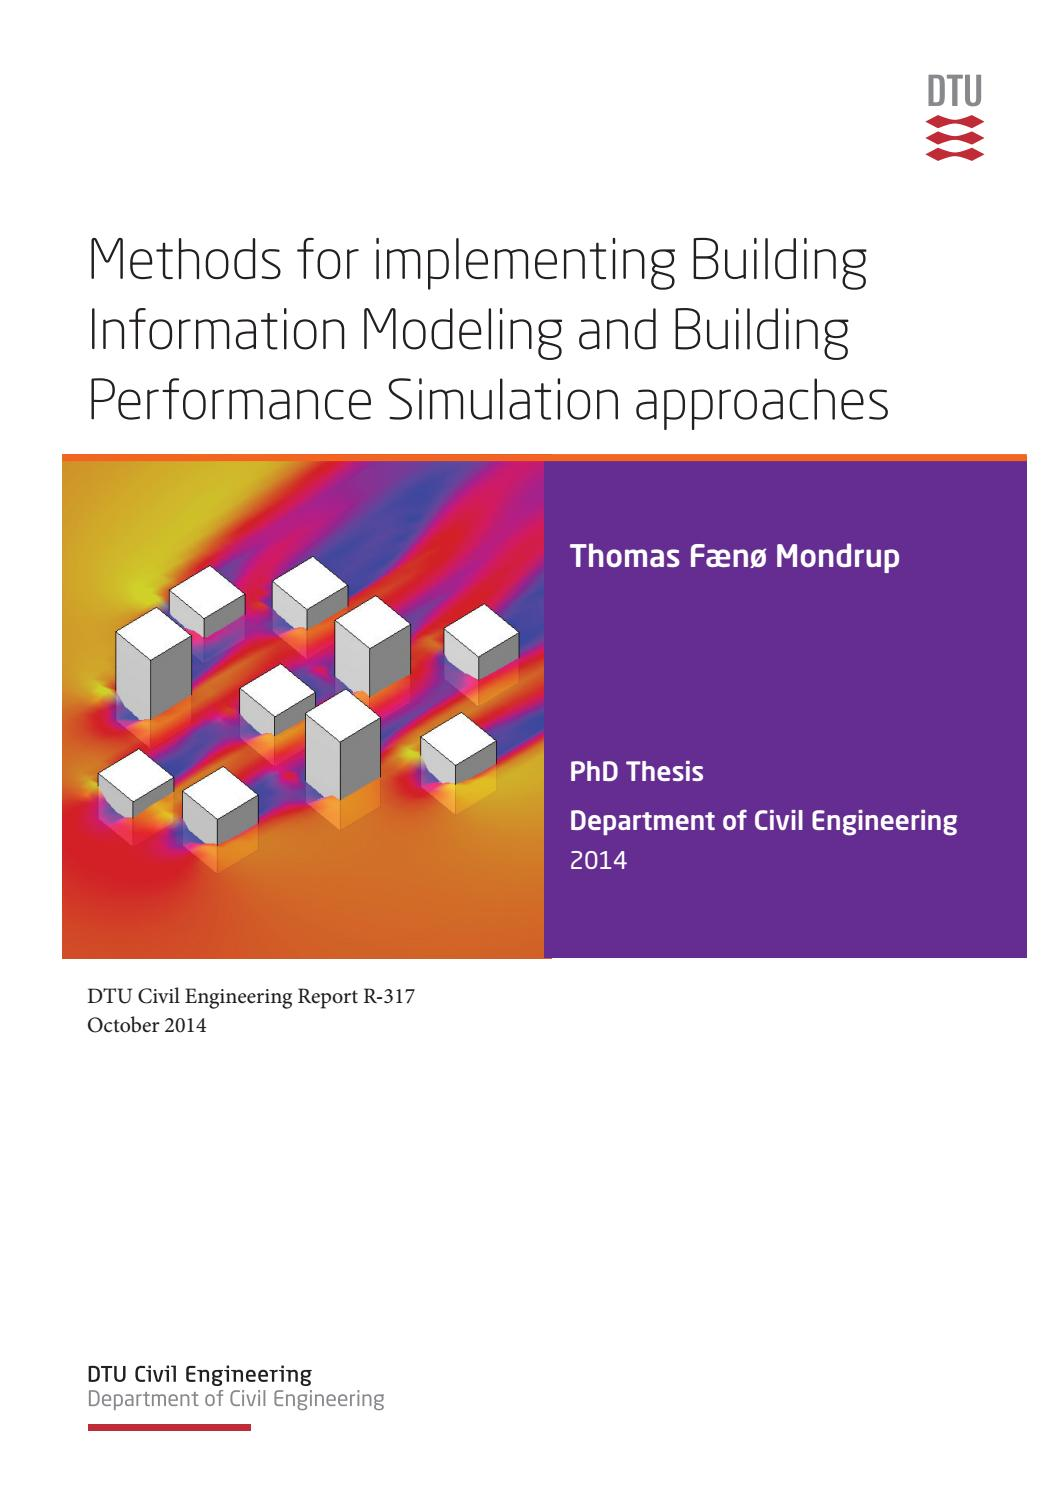 Methods for implementing BIM and BPS approaches